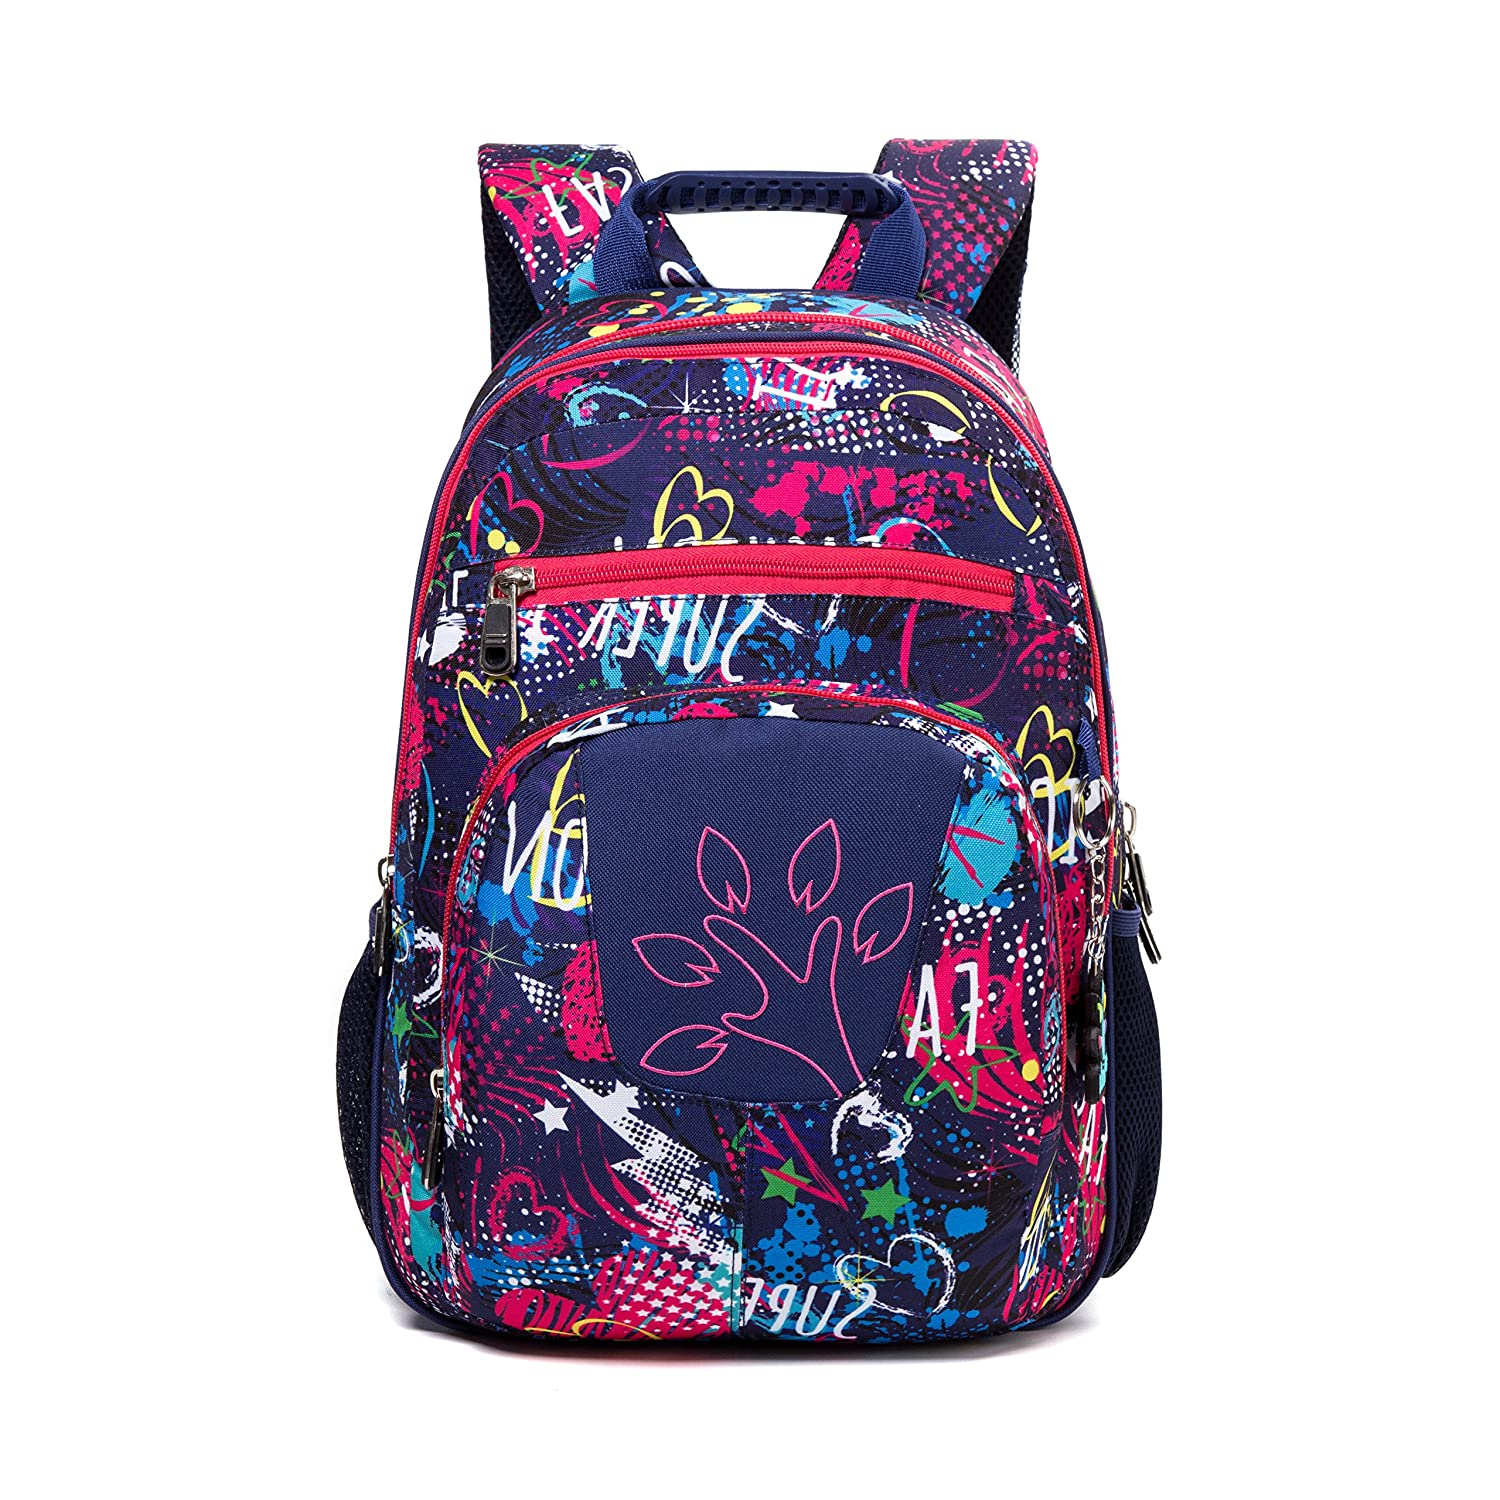 7decc05fc38e SHIPE School Backpack Casual Daypack for Girls   Boys Kids ...